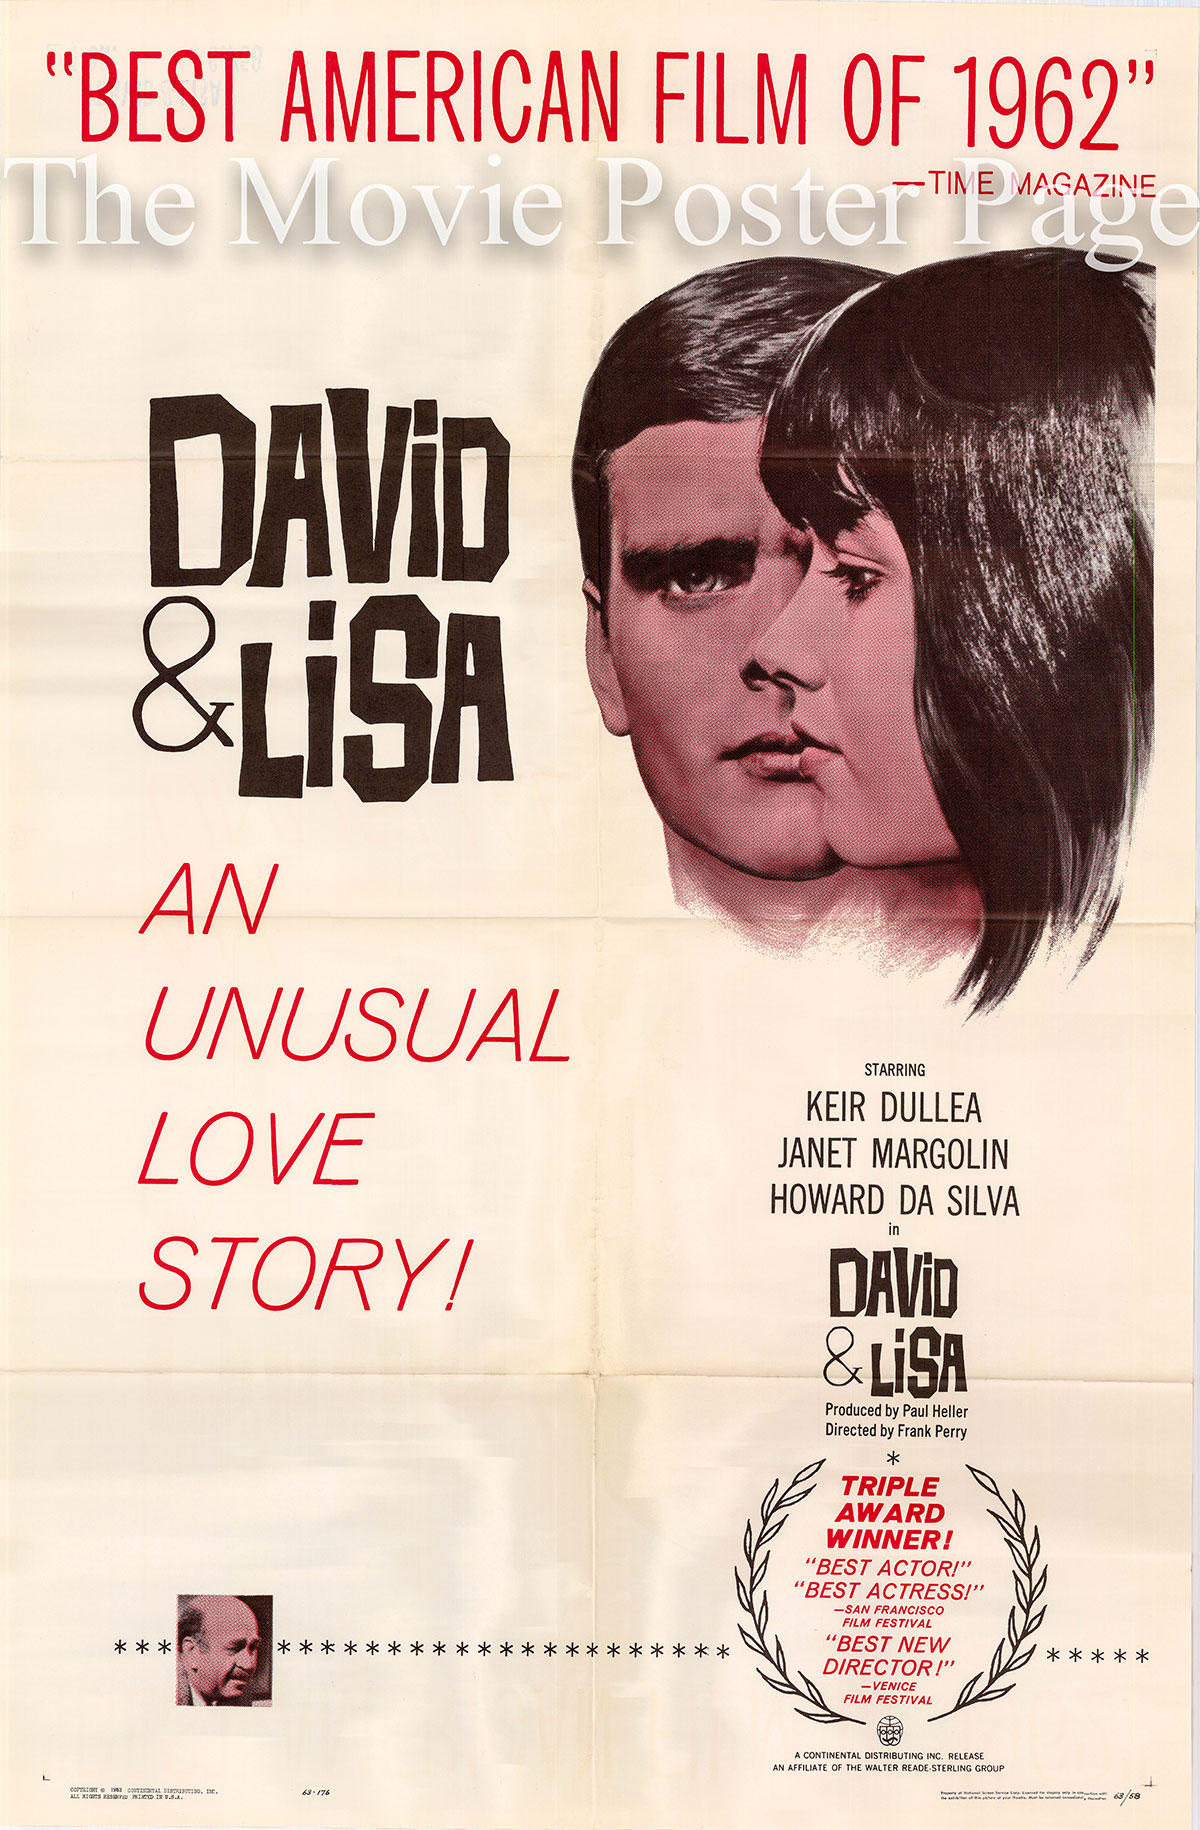 Pictured is a US one-sheet poster for the 1962 Frank Perry film David and Lisa starring Keir Dullea.